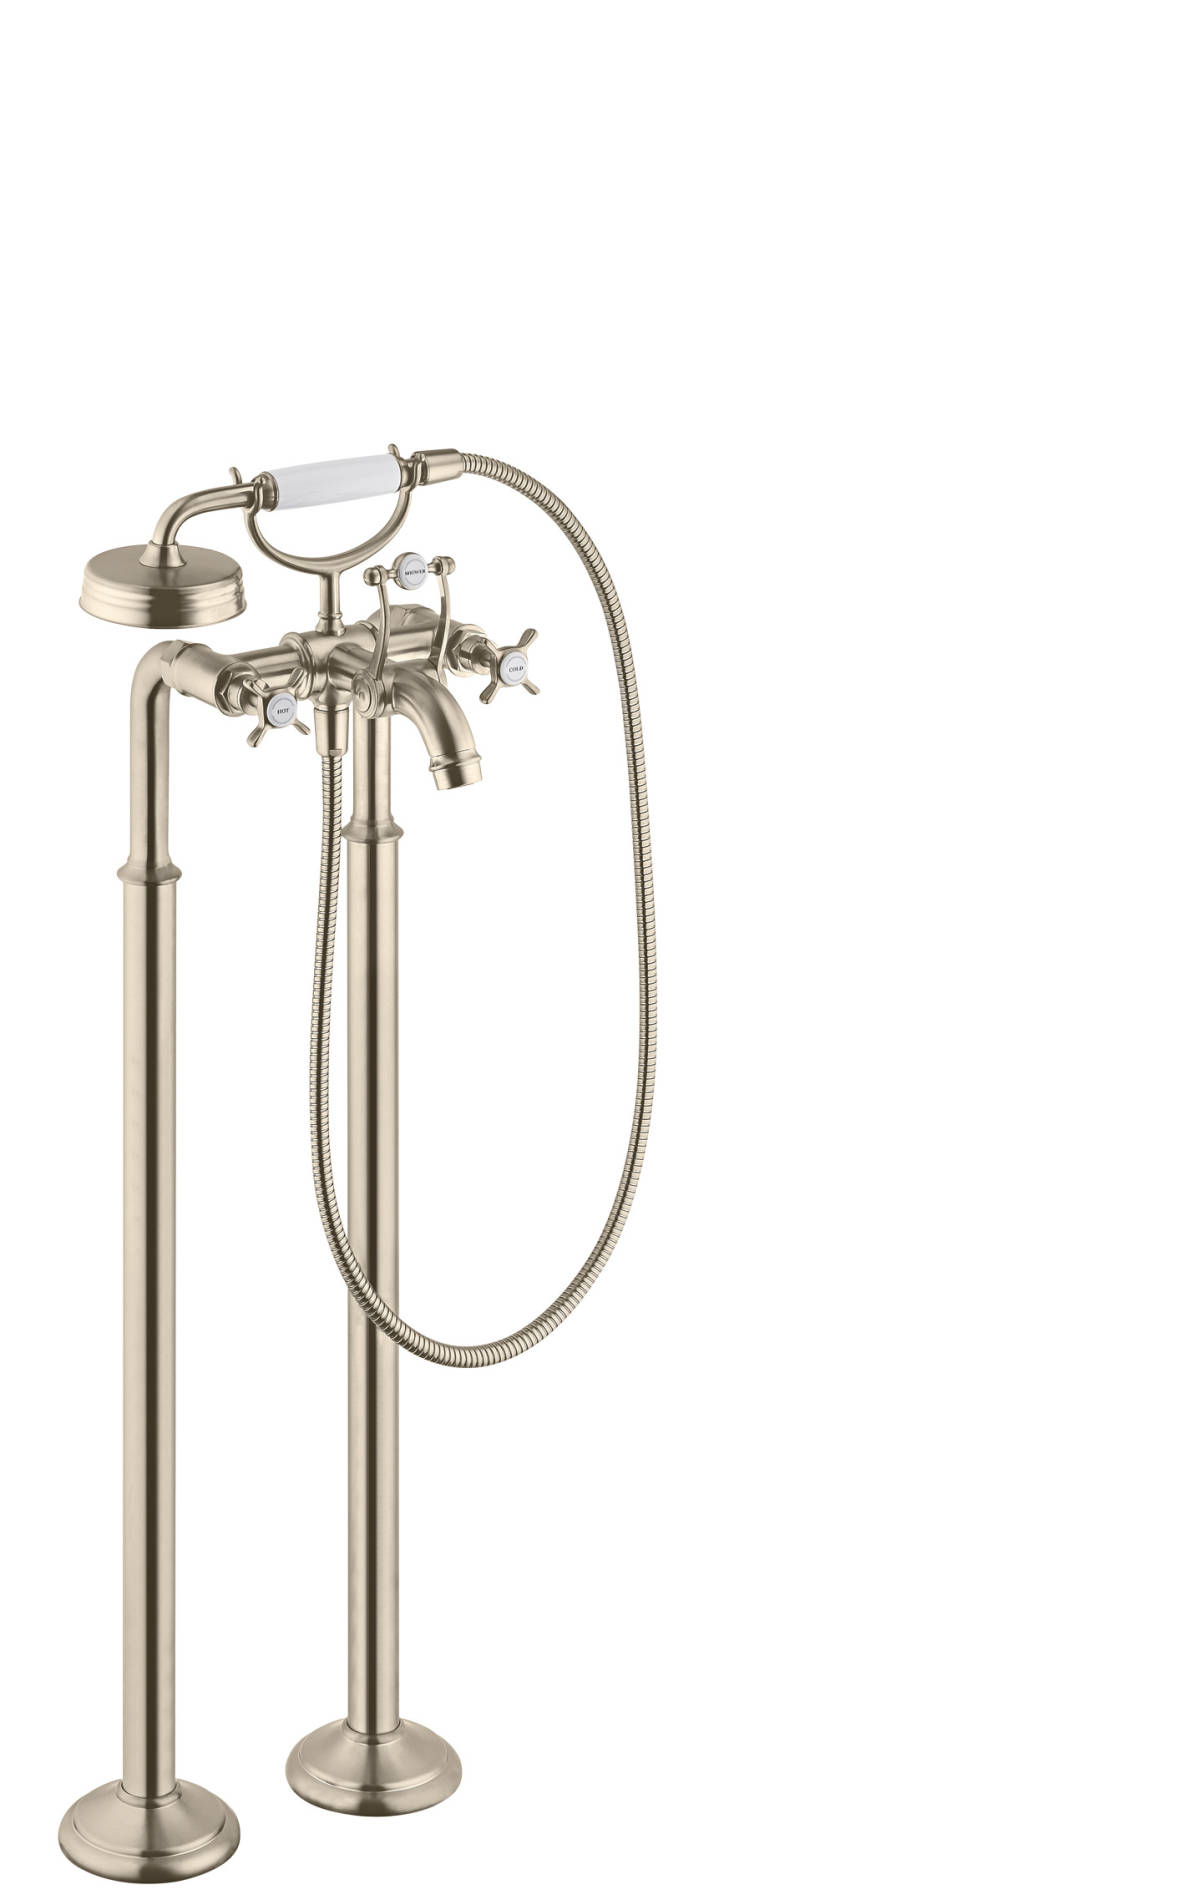 2-handle bath mixer floor-standing with cross handles, Brushed Nickel, 16547820